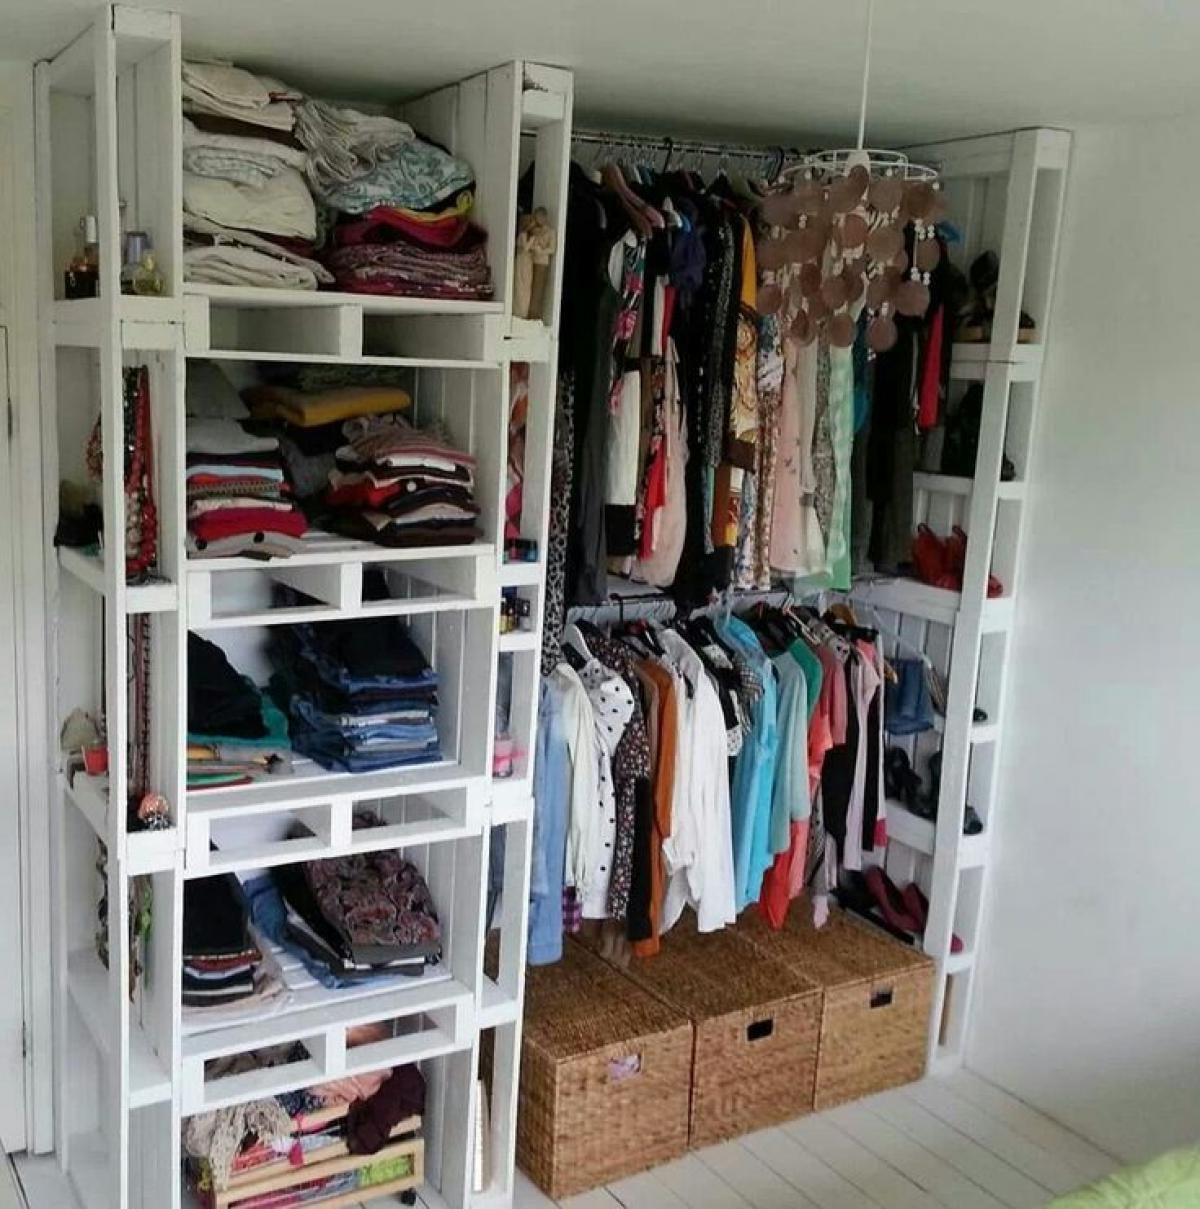 Stunning Inside Closet Dressers Bedroom Storage Ideas For Clothes